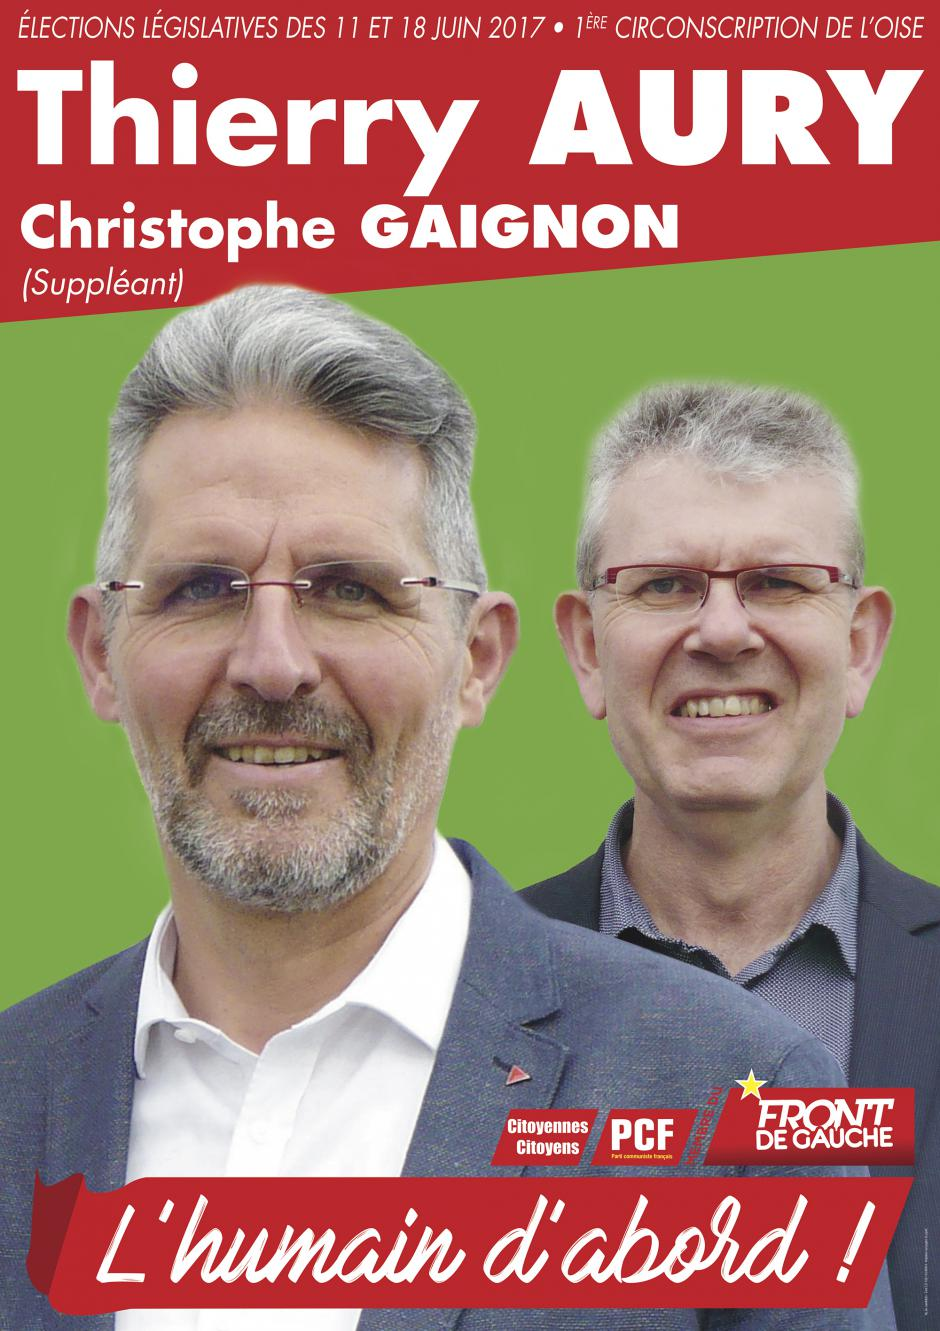 Affiche de campagne de Thierry Aury et Christophe Gaignon aux Législatives 2017 - 1re circonscription de l'Oise, 18 mai 2017